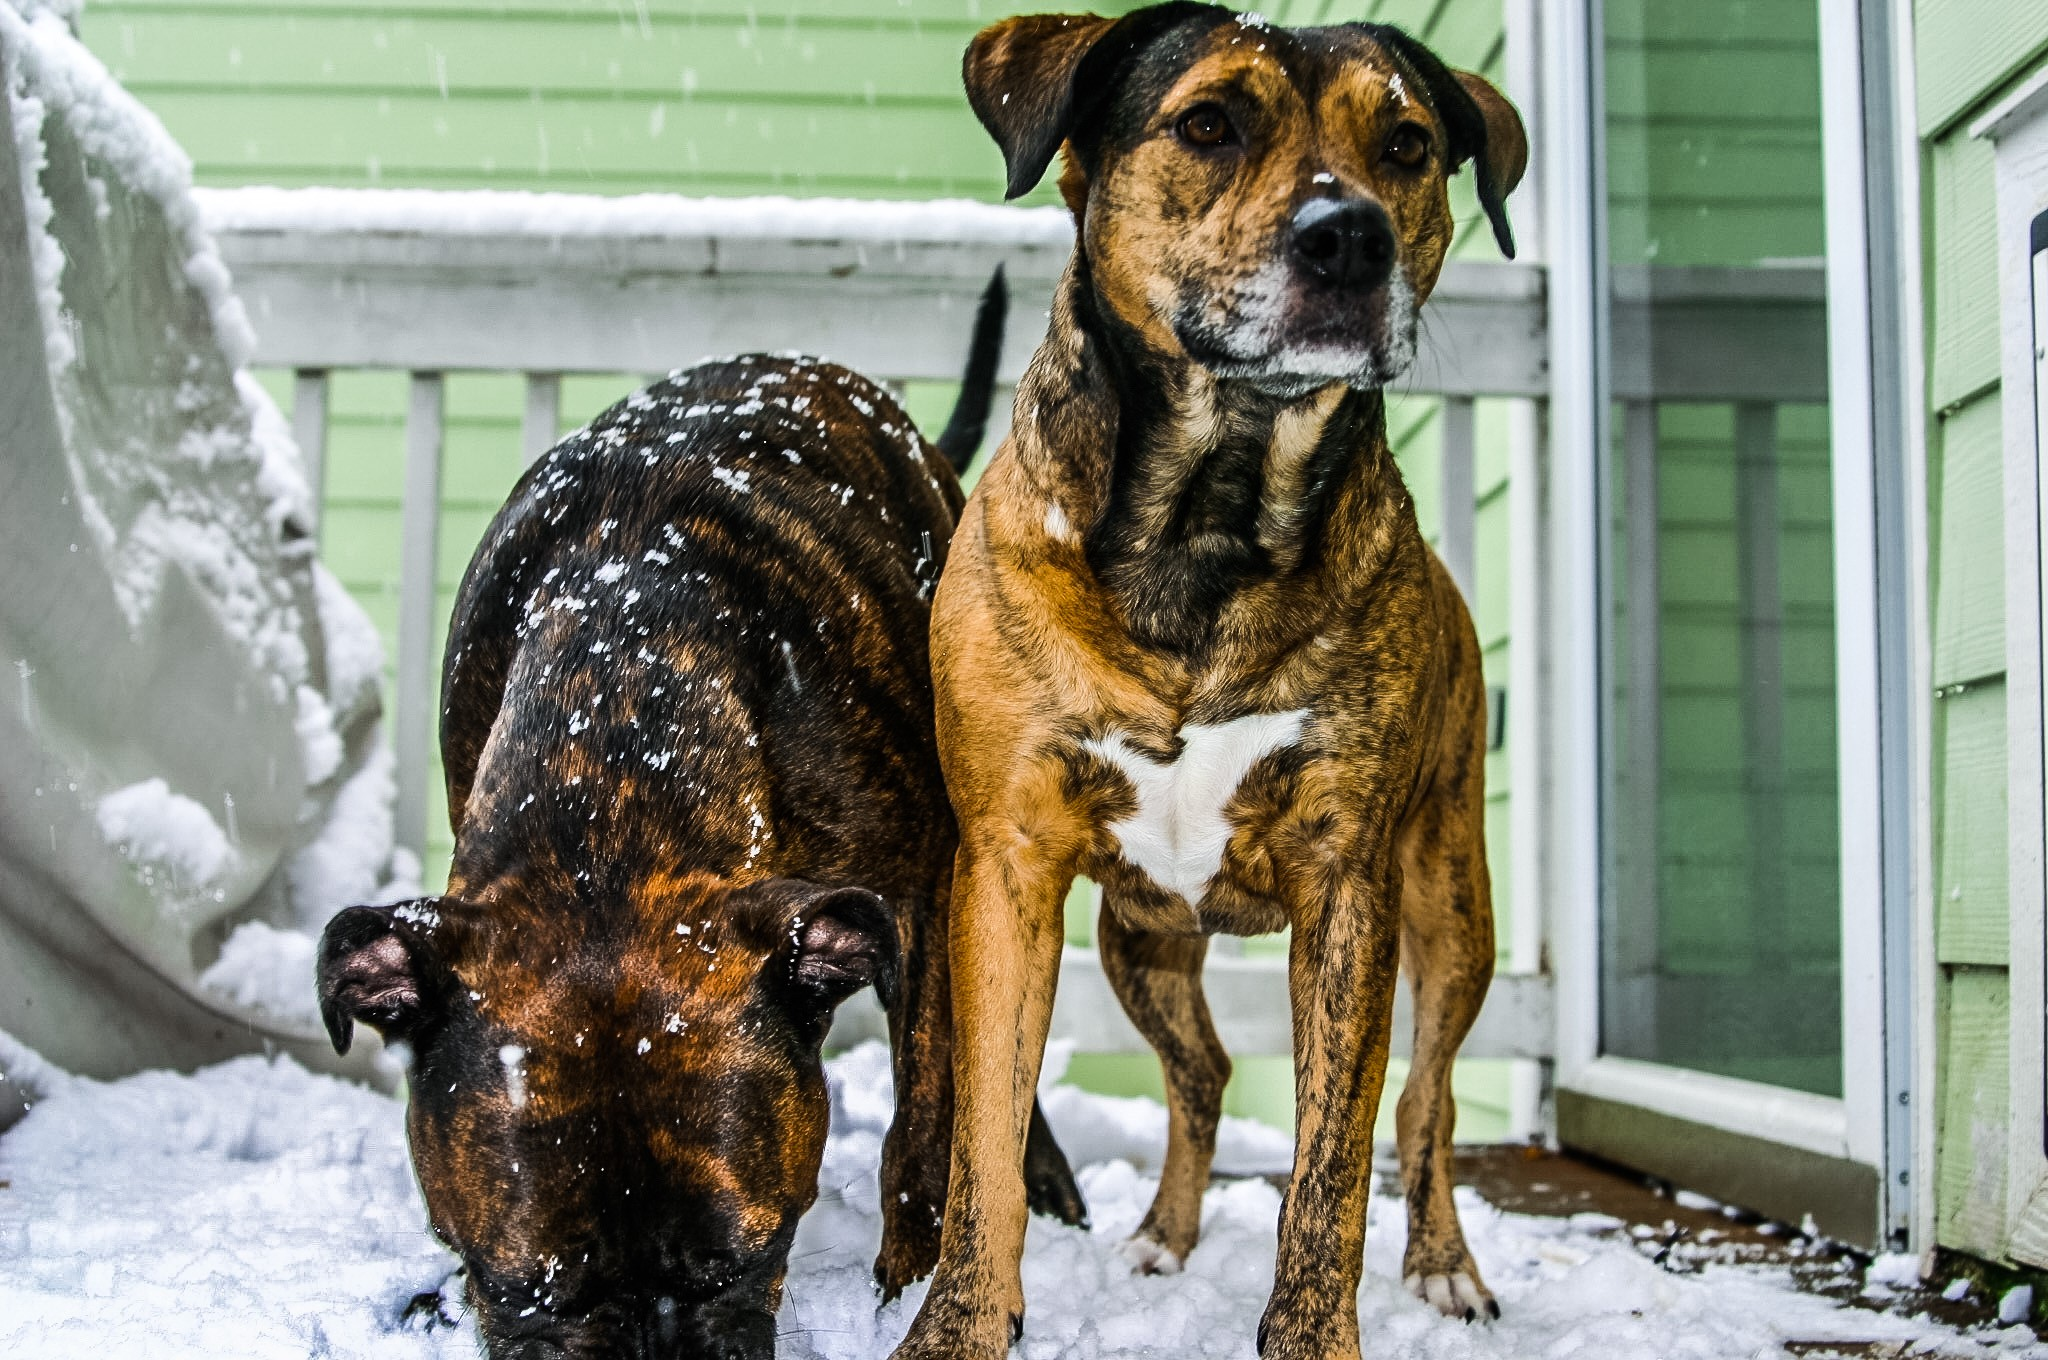 """<div class=""""meta image-caption""""><div class=""""origin-logo origin-image none""""><span>none</span></div><span class=""""caption-text"""">Don's dogs Haden and Harley</span></div>"""